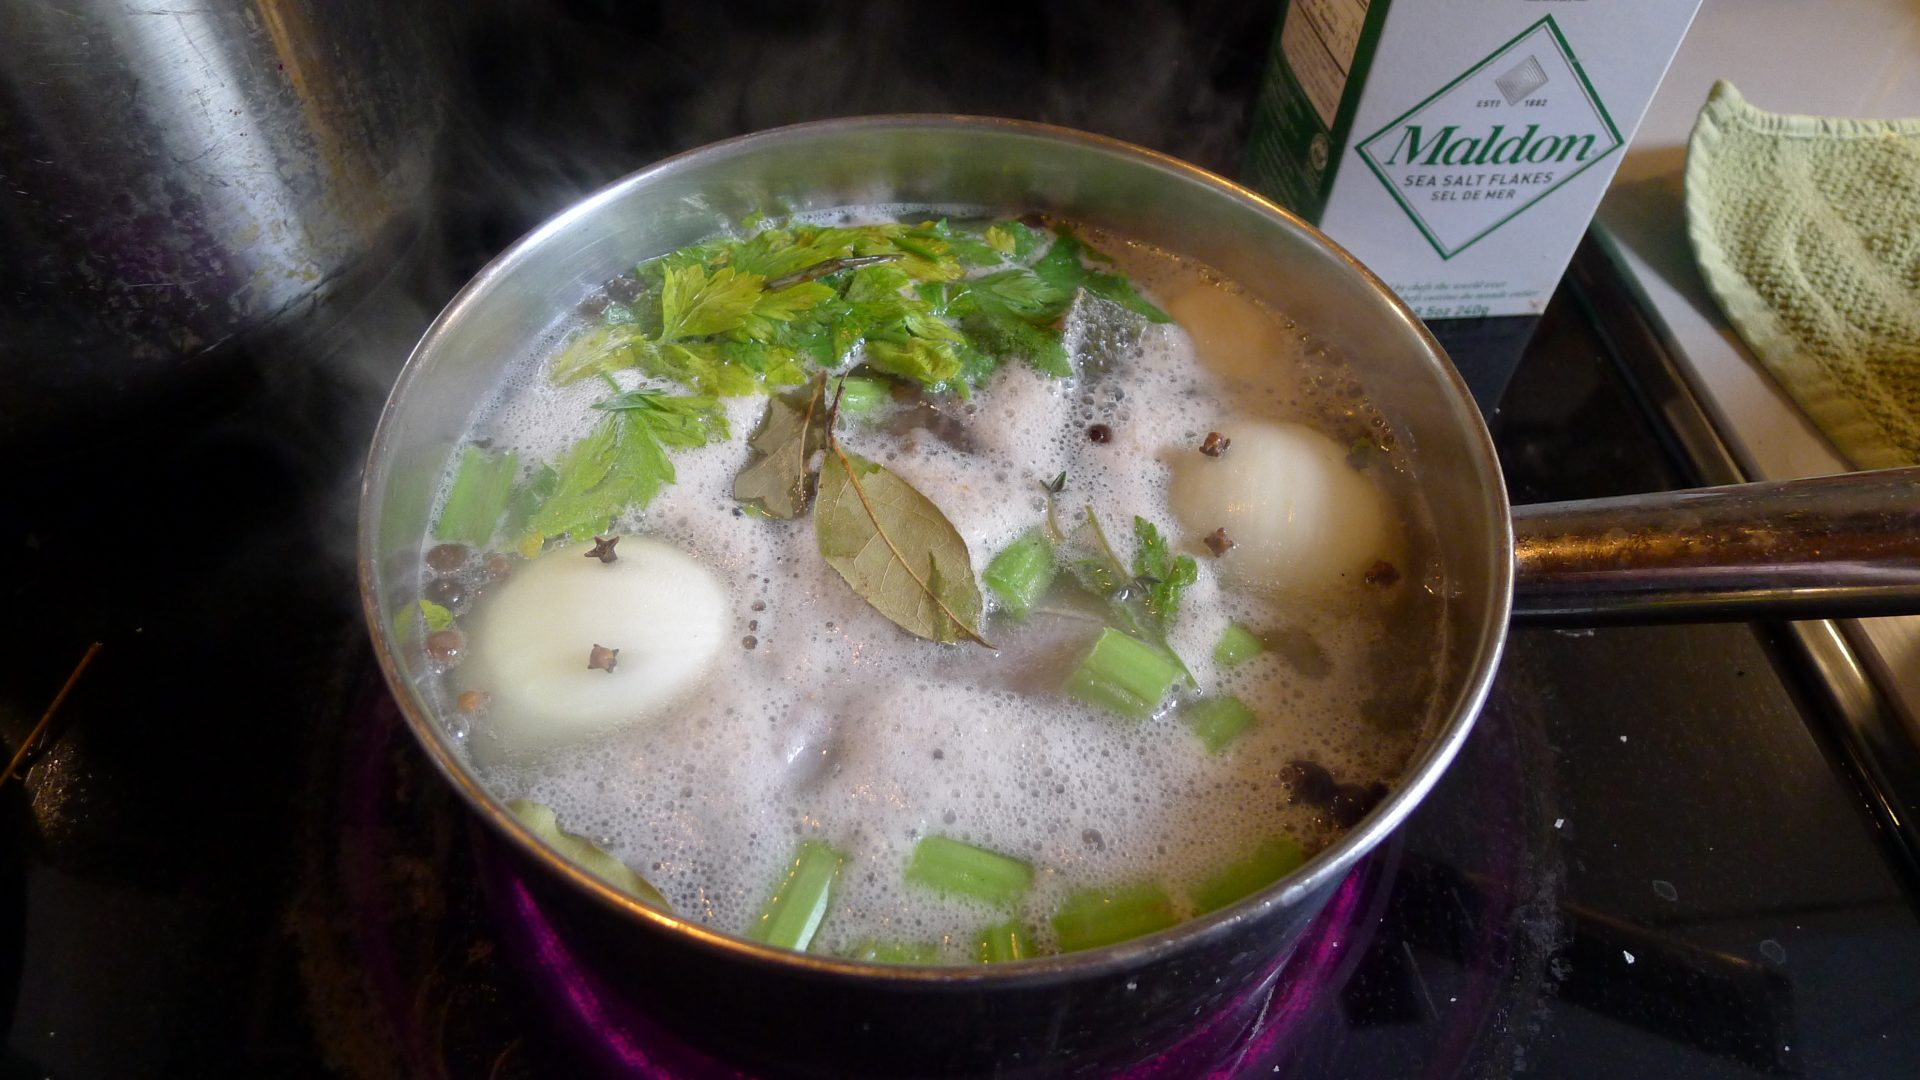 Bring to the boil, being sure to remove any of the admittedly nasty scum that rises to the surface. THIS IS IMPORTANT. Turn down to a gentle, just-moving simmer and leave for around two hours (uncovered).